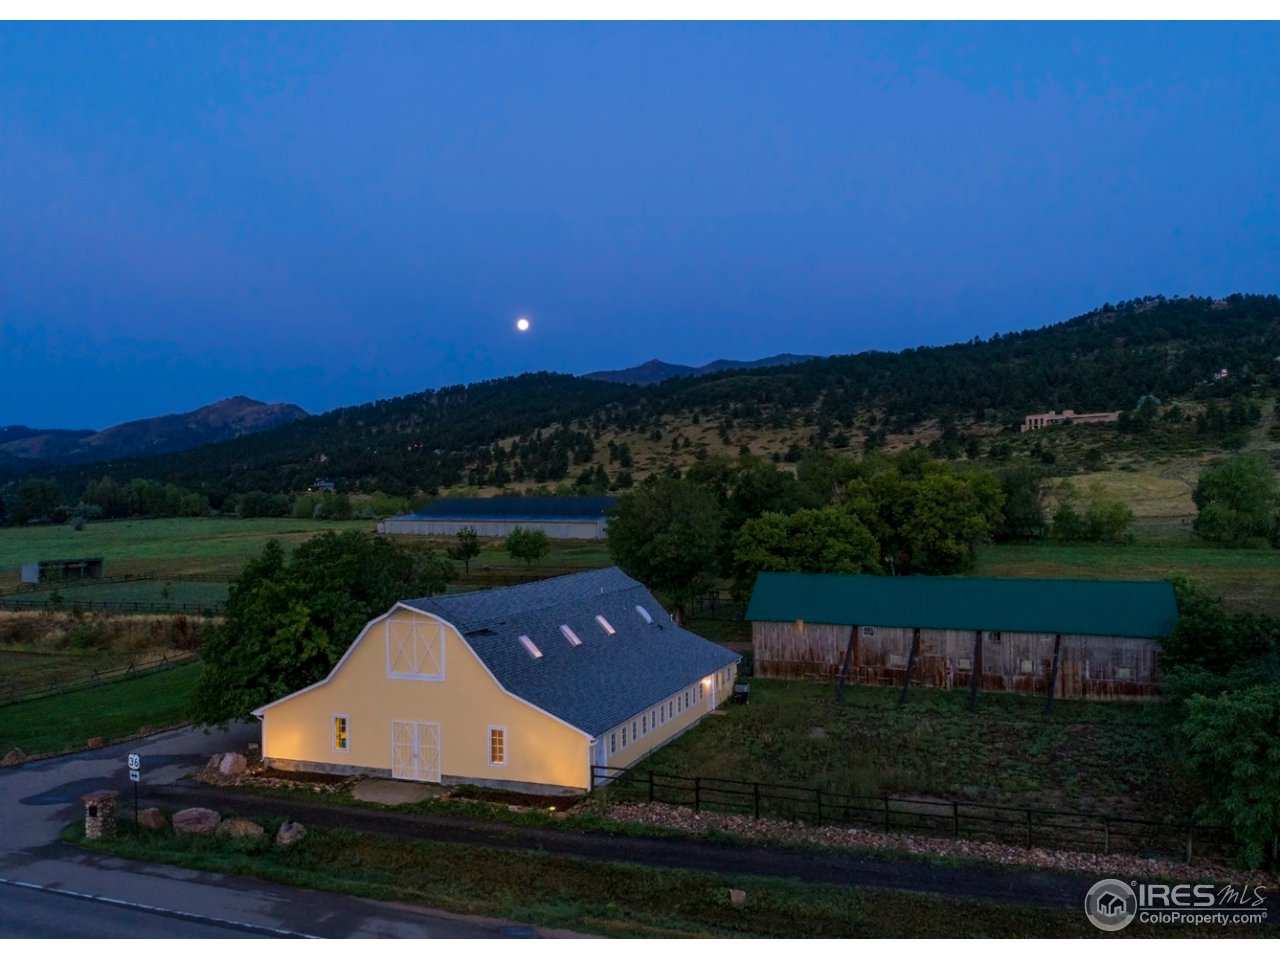 9421 Foothills Hwy, Longmont CO 80503